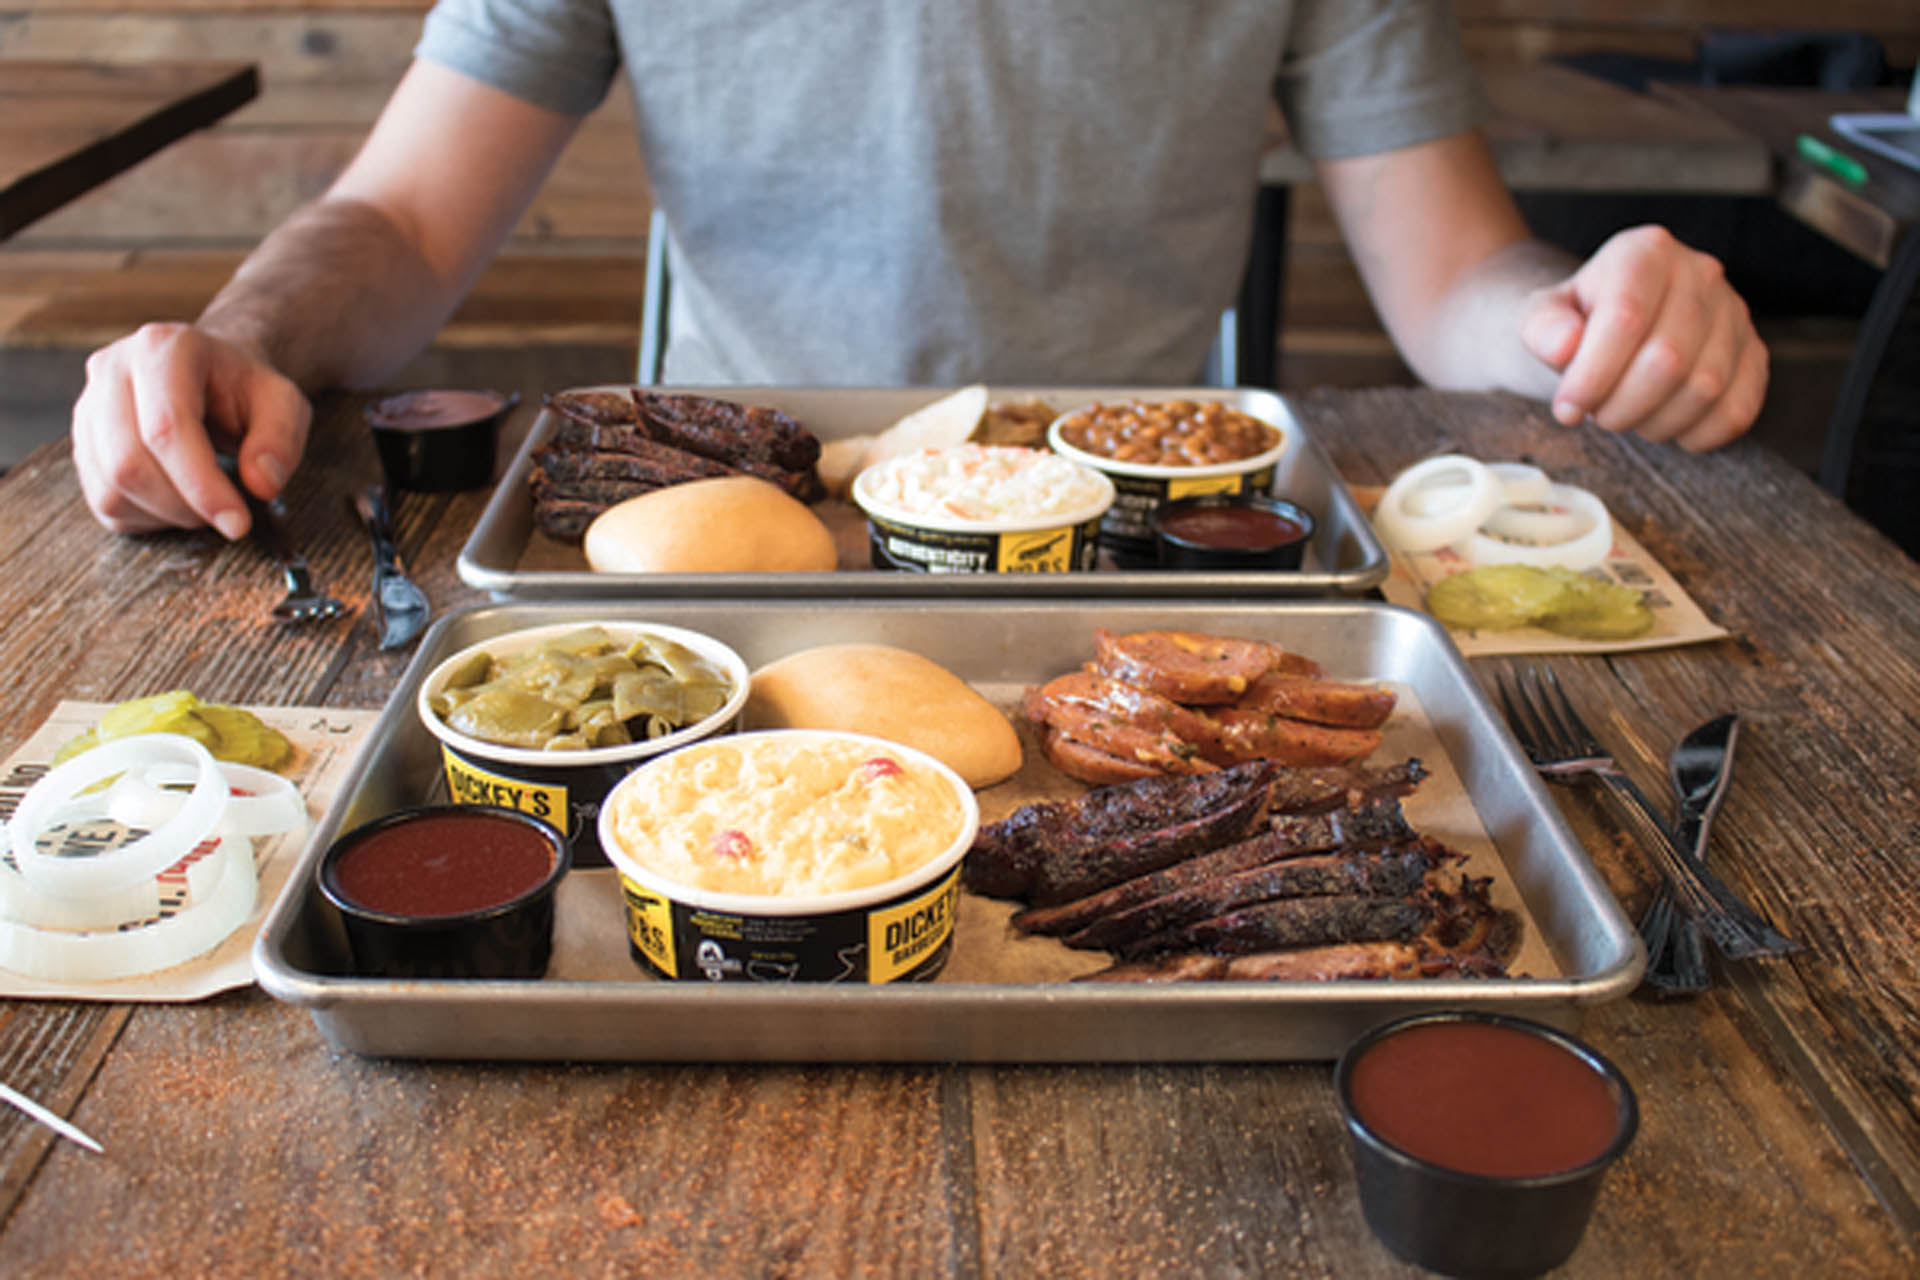 WKYC NBC 3: Dickey's Barbecue Pit